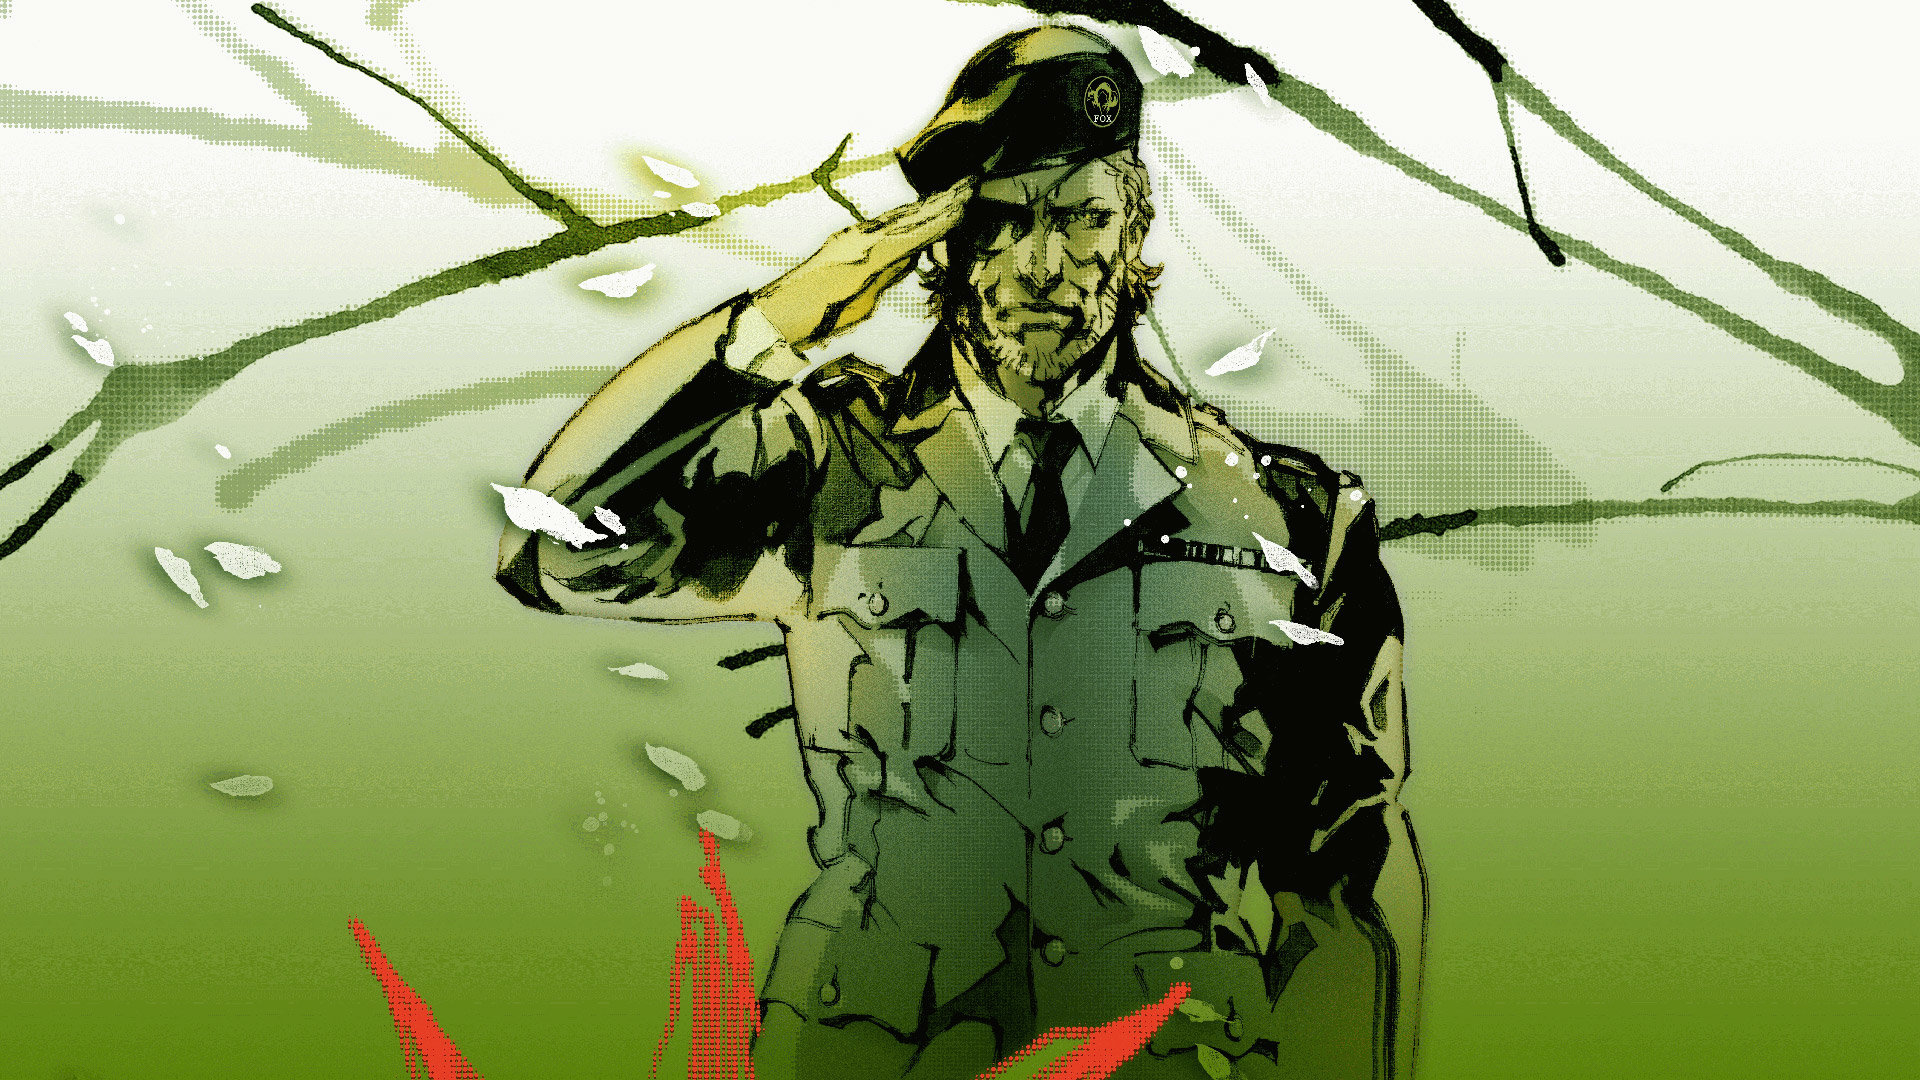 solid snake wallpapers 1920x1080 full hd 1080p desktop backgrounds